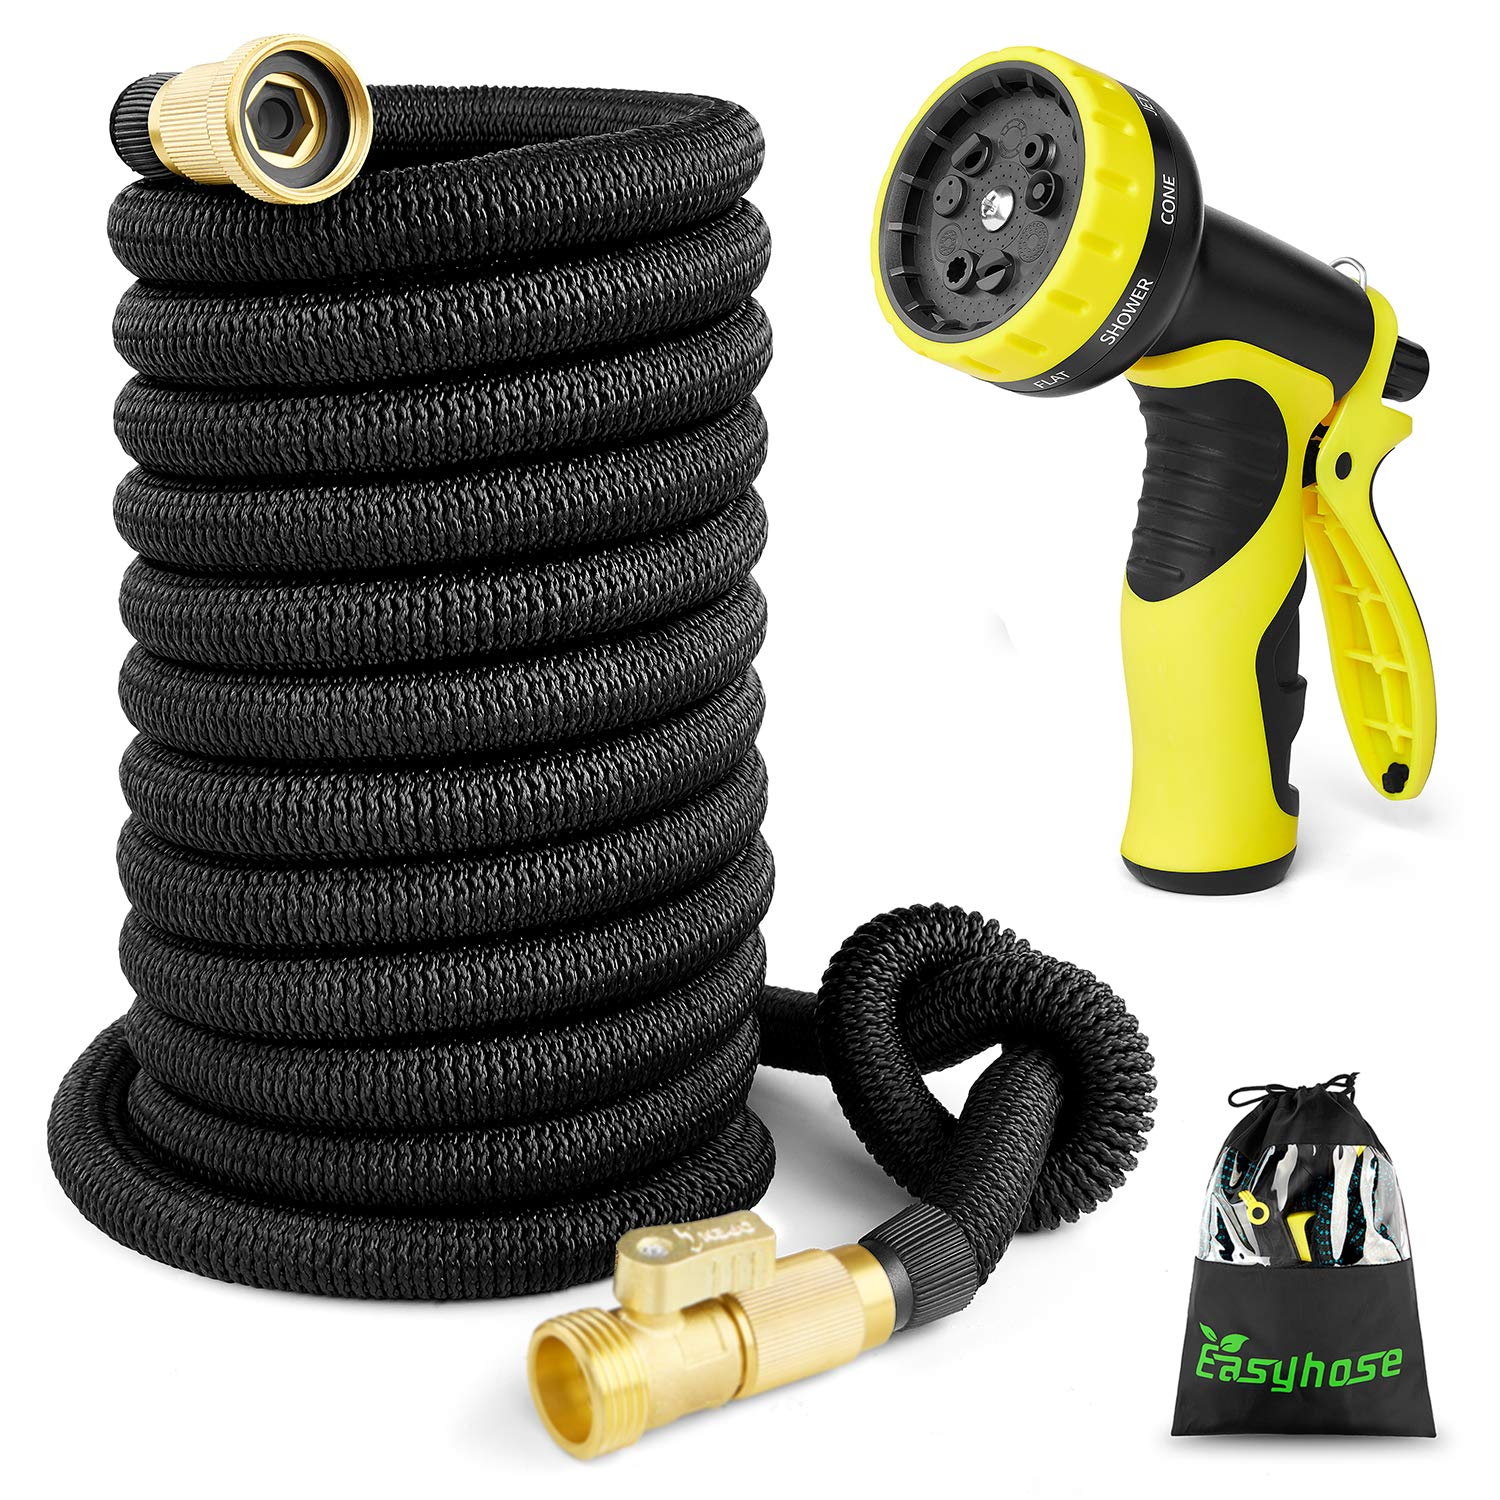 50ft Expandable Garden Hose, Expanding Water Hose with3/4 inch Strong Solid Brass Connector, Expandable Hoses with 9 Function Nozzle Flexible Garden Hose Prevent Leaking Strongest Outdoor Hose(Black)